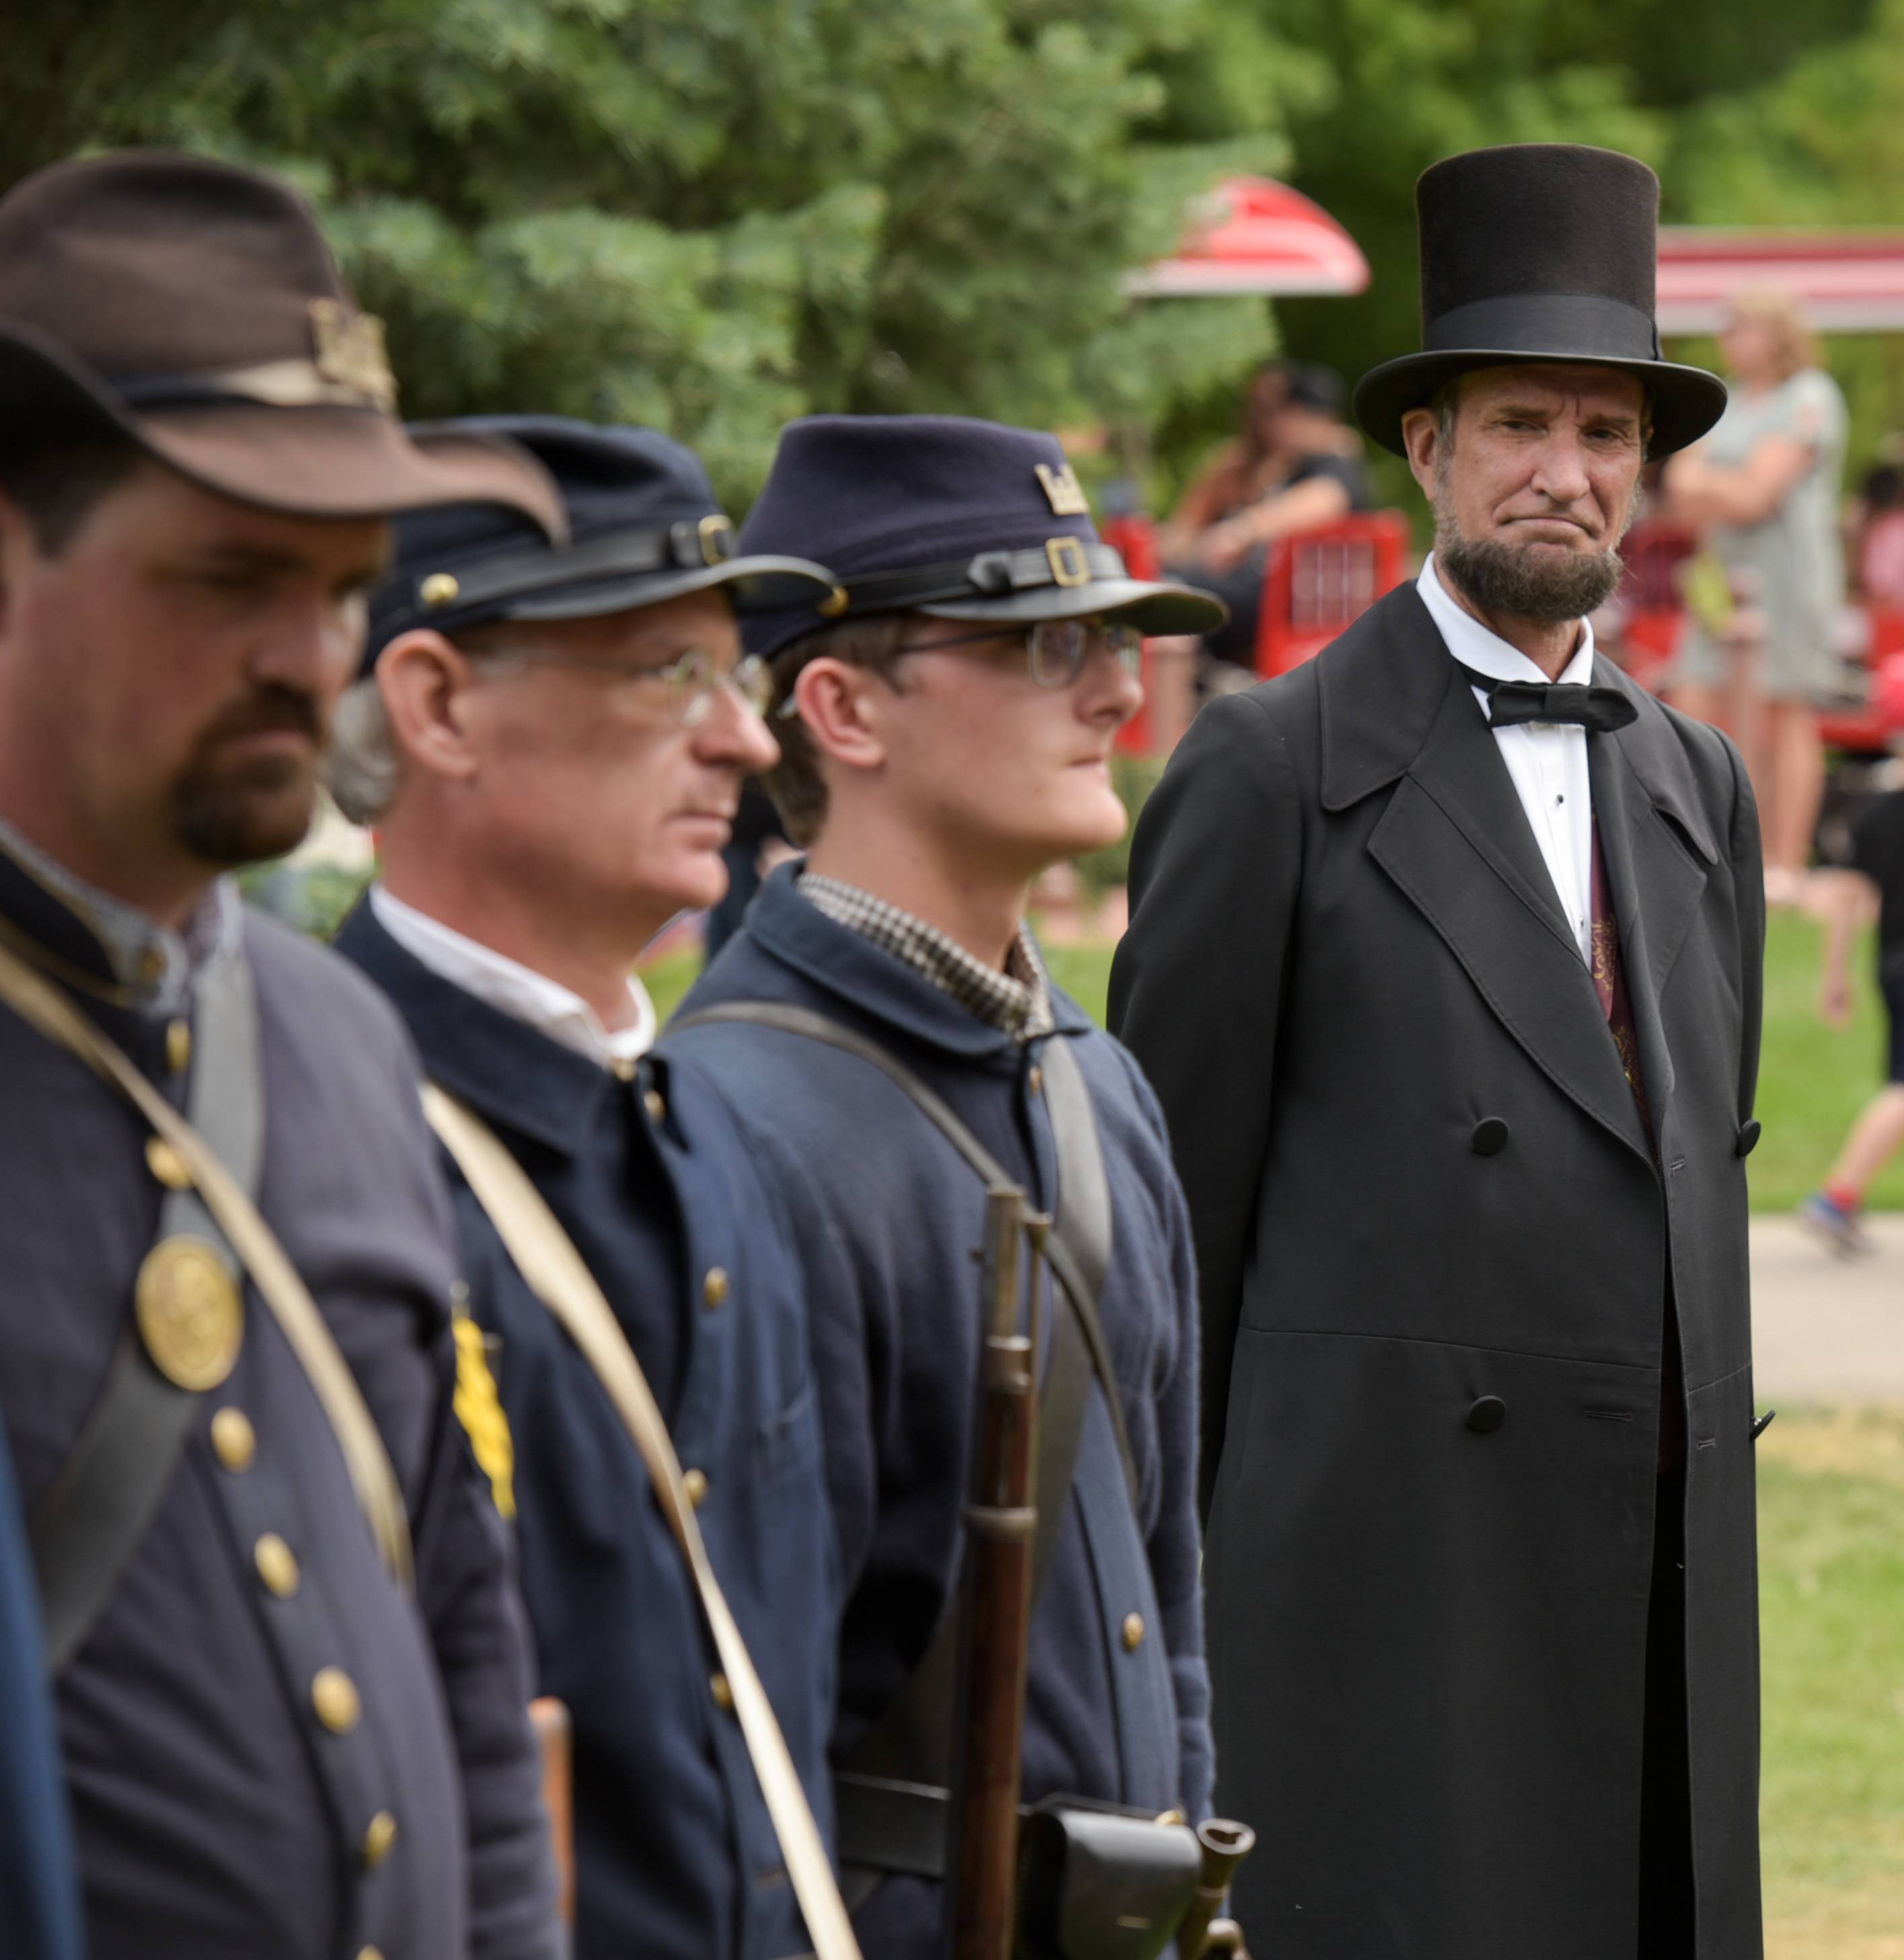 President Abraham Lincoln, portrayed by Michael Krebs, inspects Union troops as they drill Sunday during Blackberry Farm's Civil War Days.